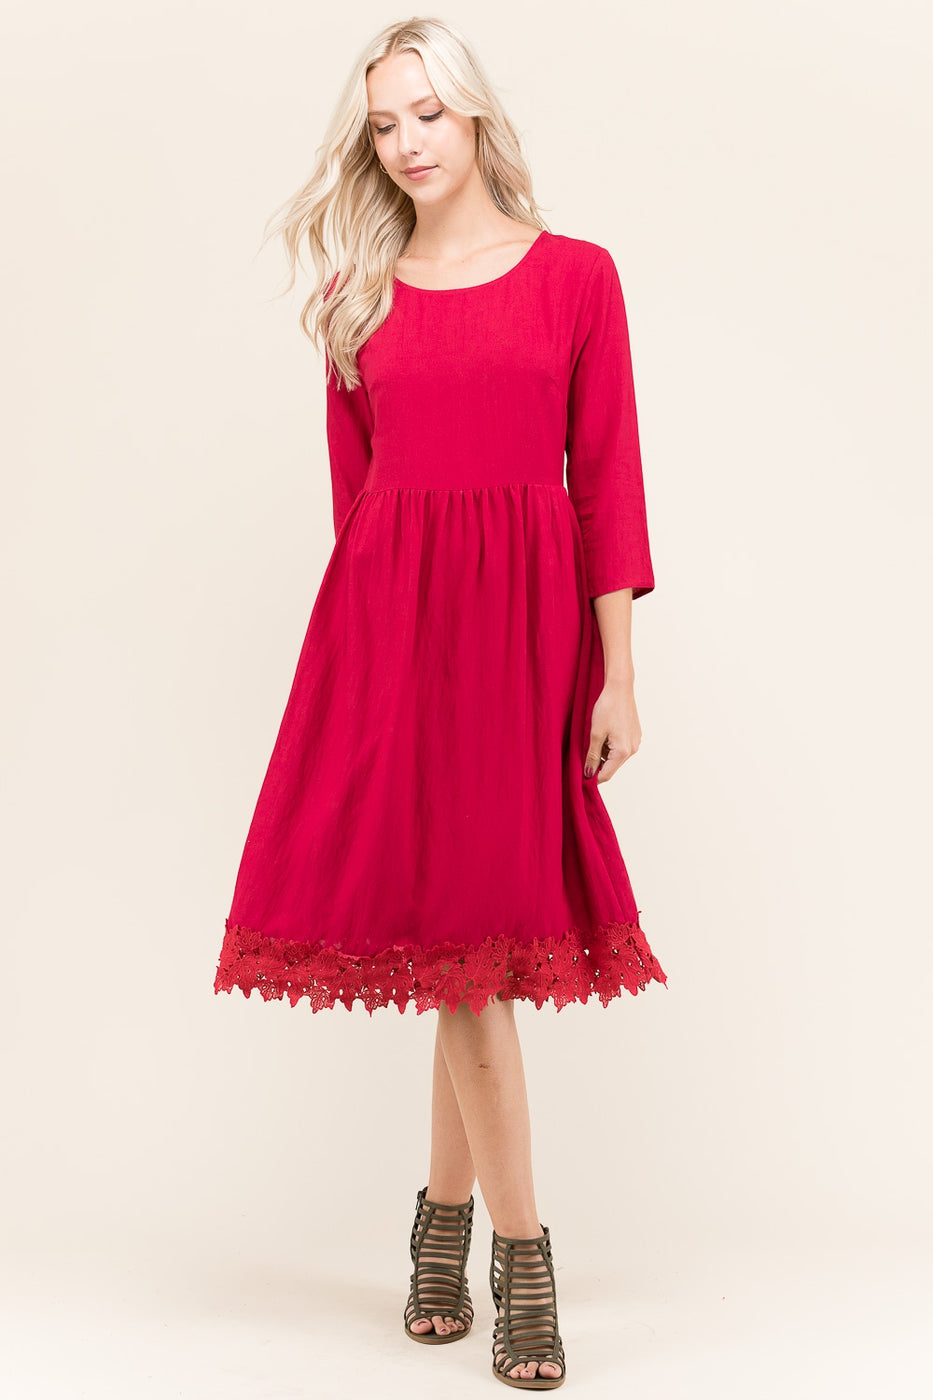 Eliana 3/4 Sleeves Solid Lace Trim Midi Dress Siin Bees